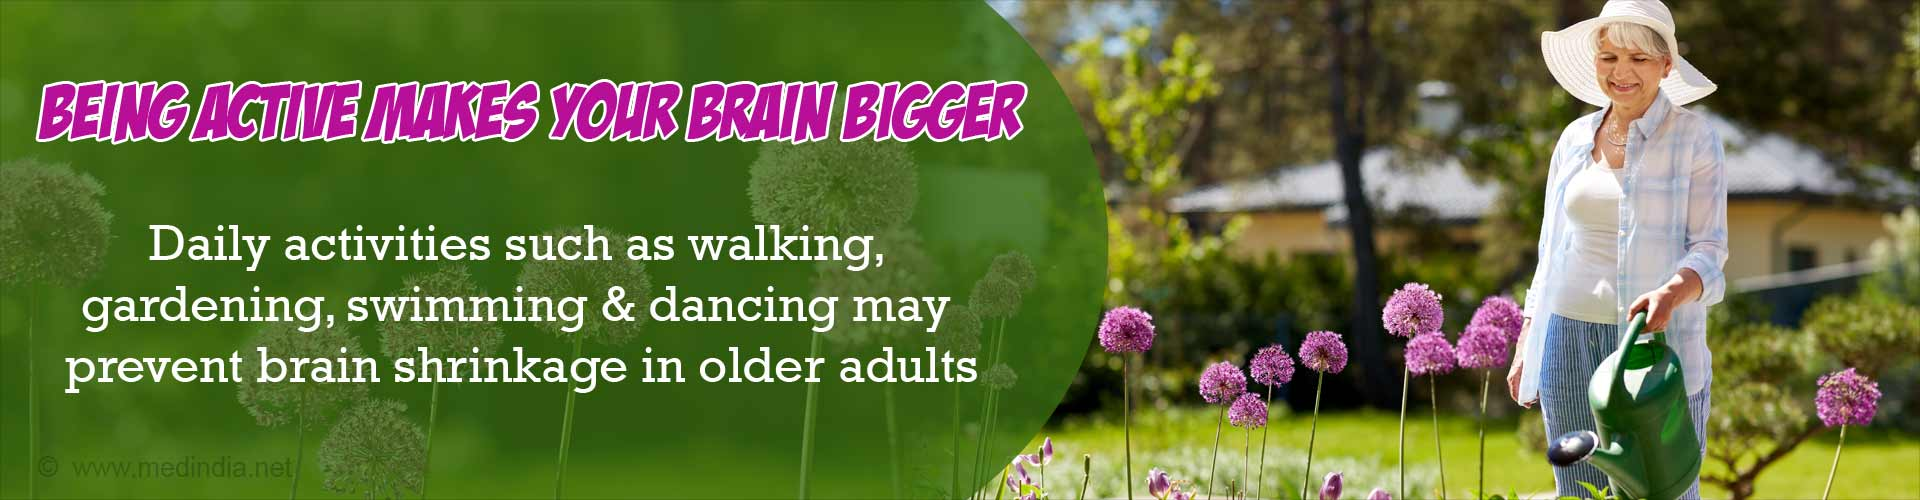 Bigger Brains: Daily Exercise can Prevent Your Brain From Shrinking as You Age